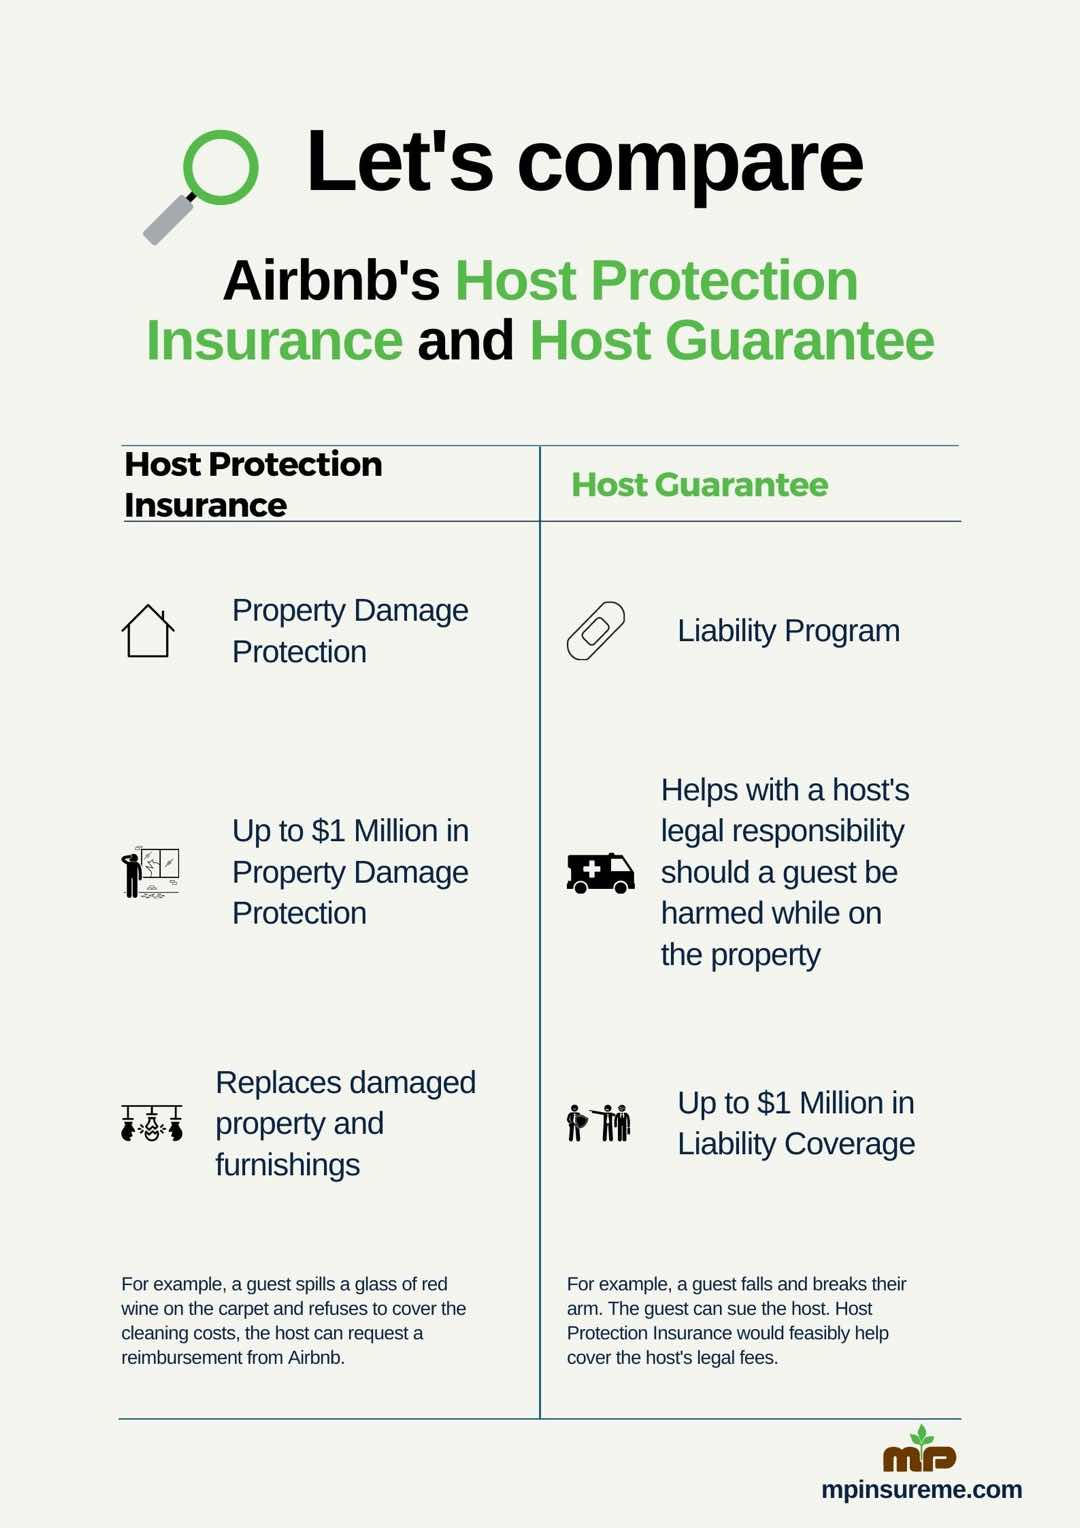 airbnb host protection insurance vs host guarantee